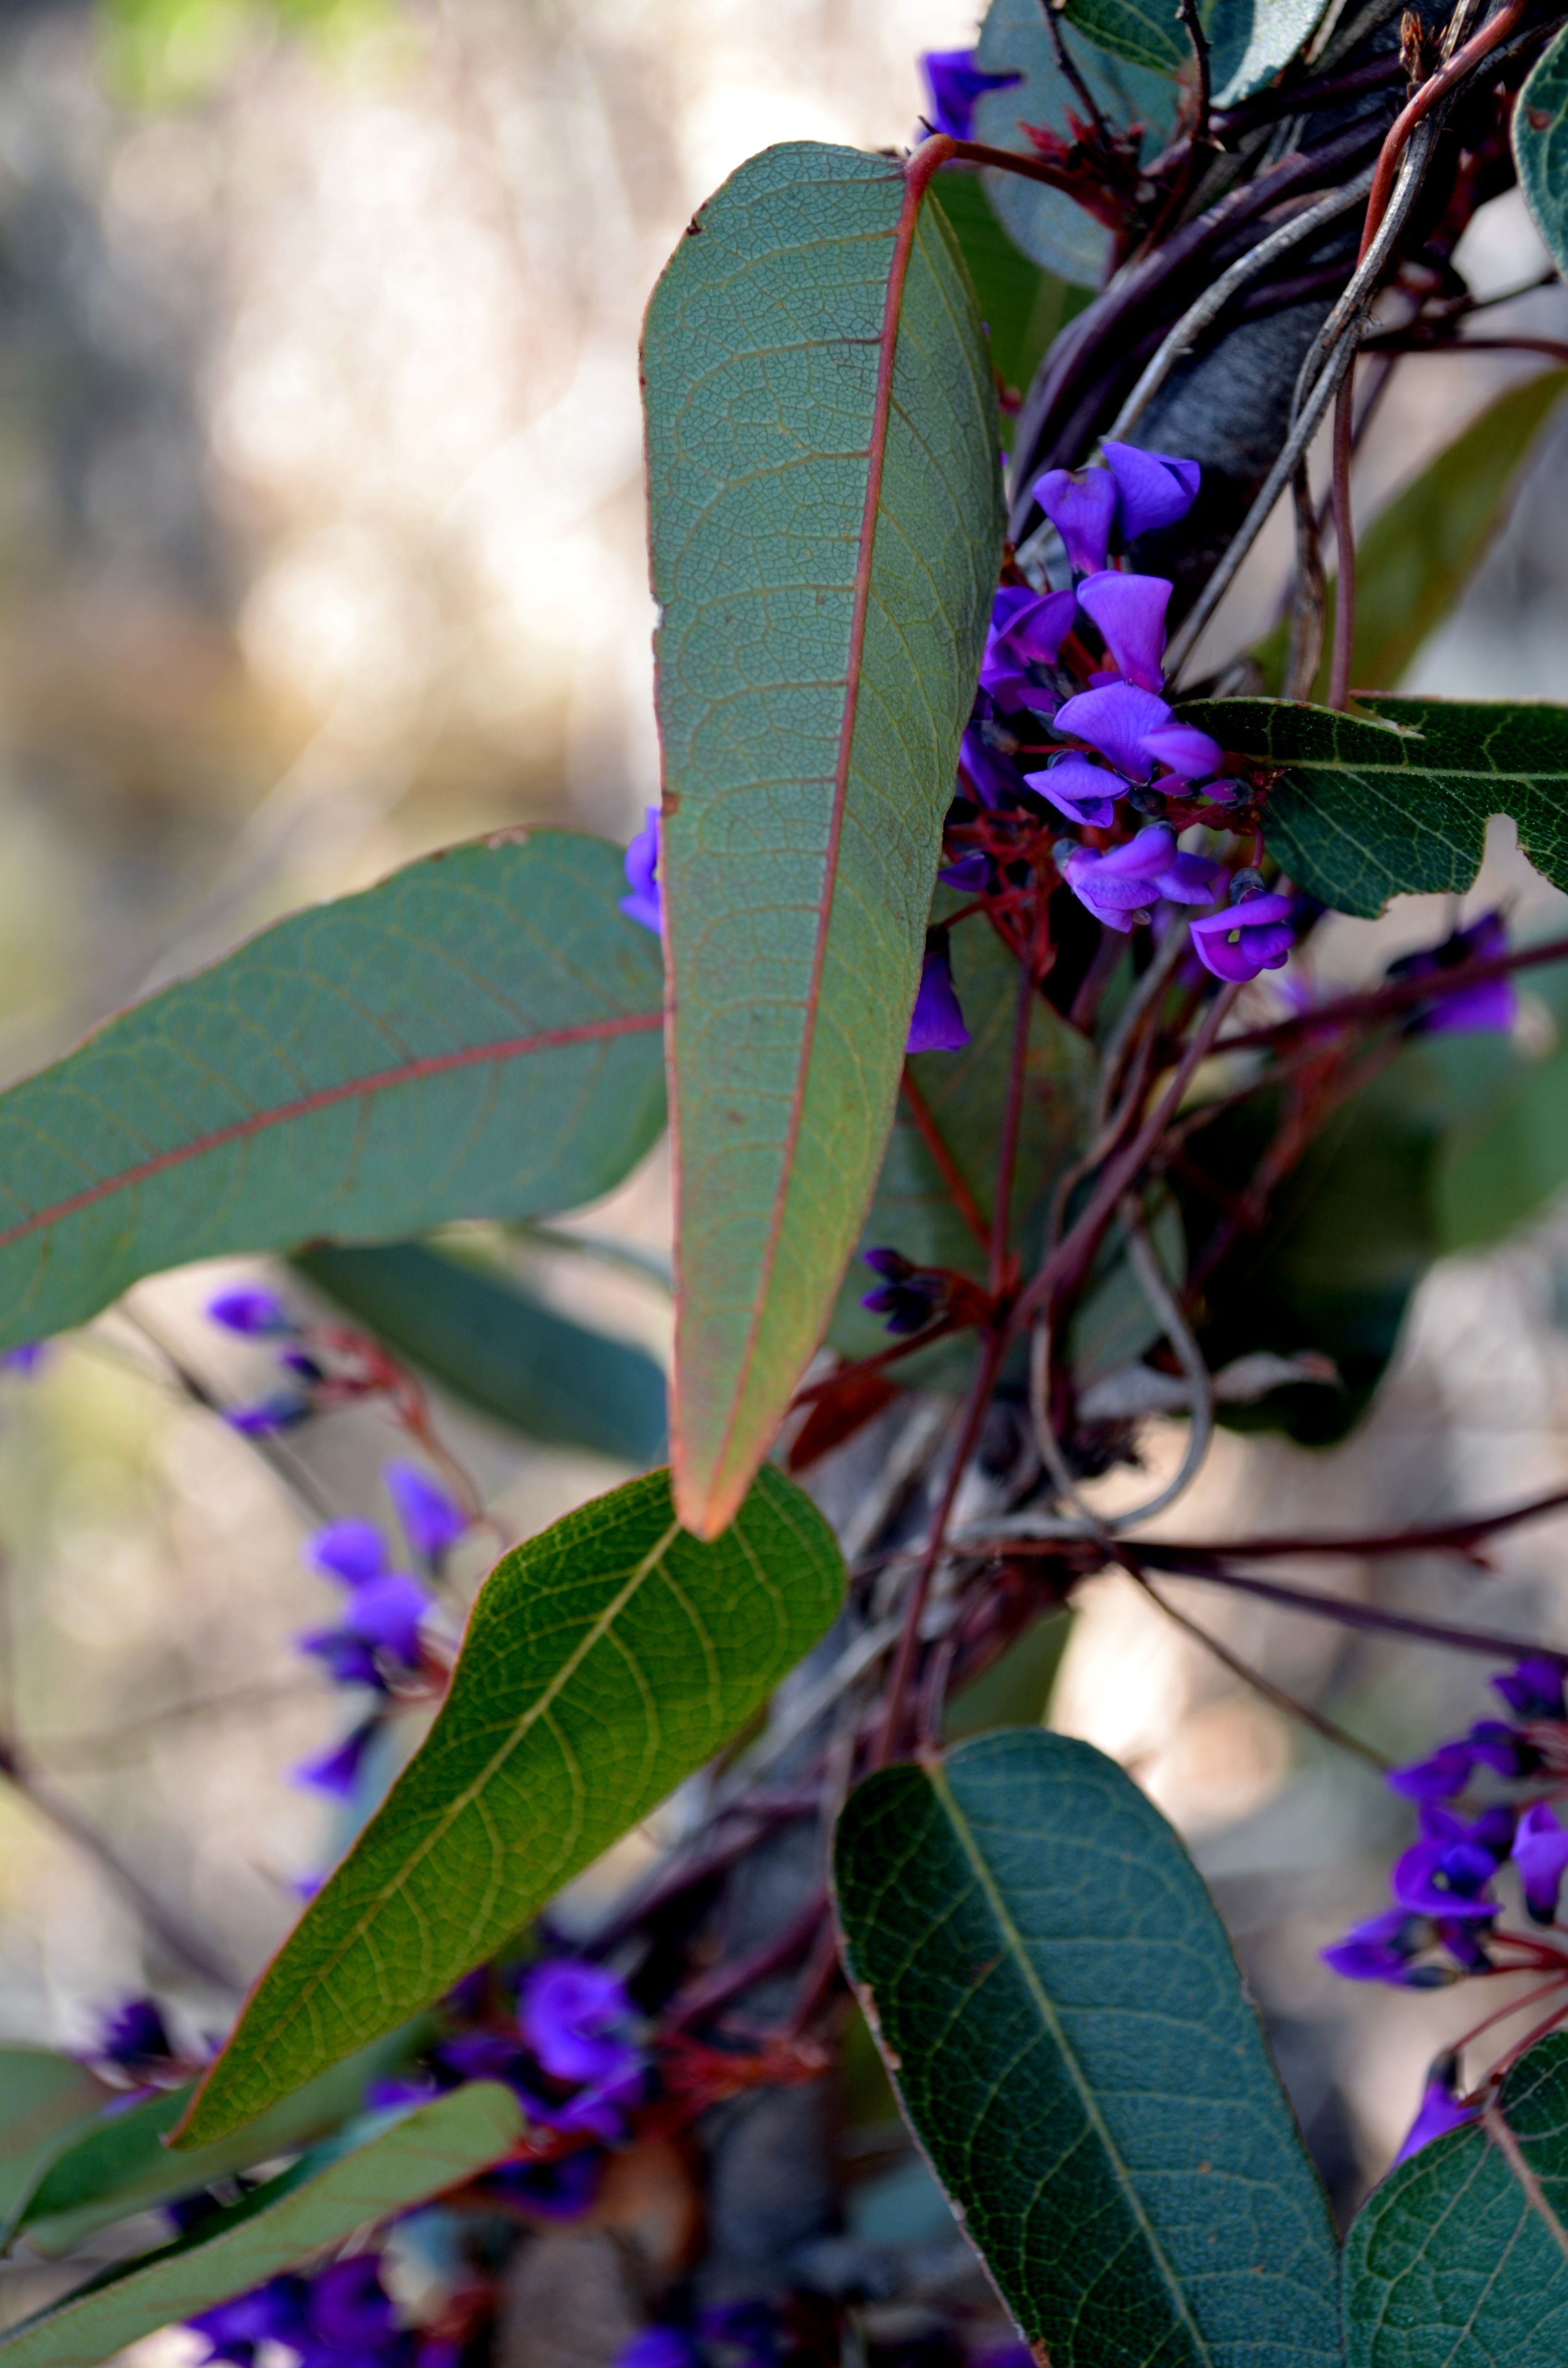 Hardenbergia violacea syn. H. monophylla is a species of